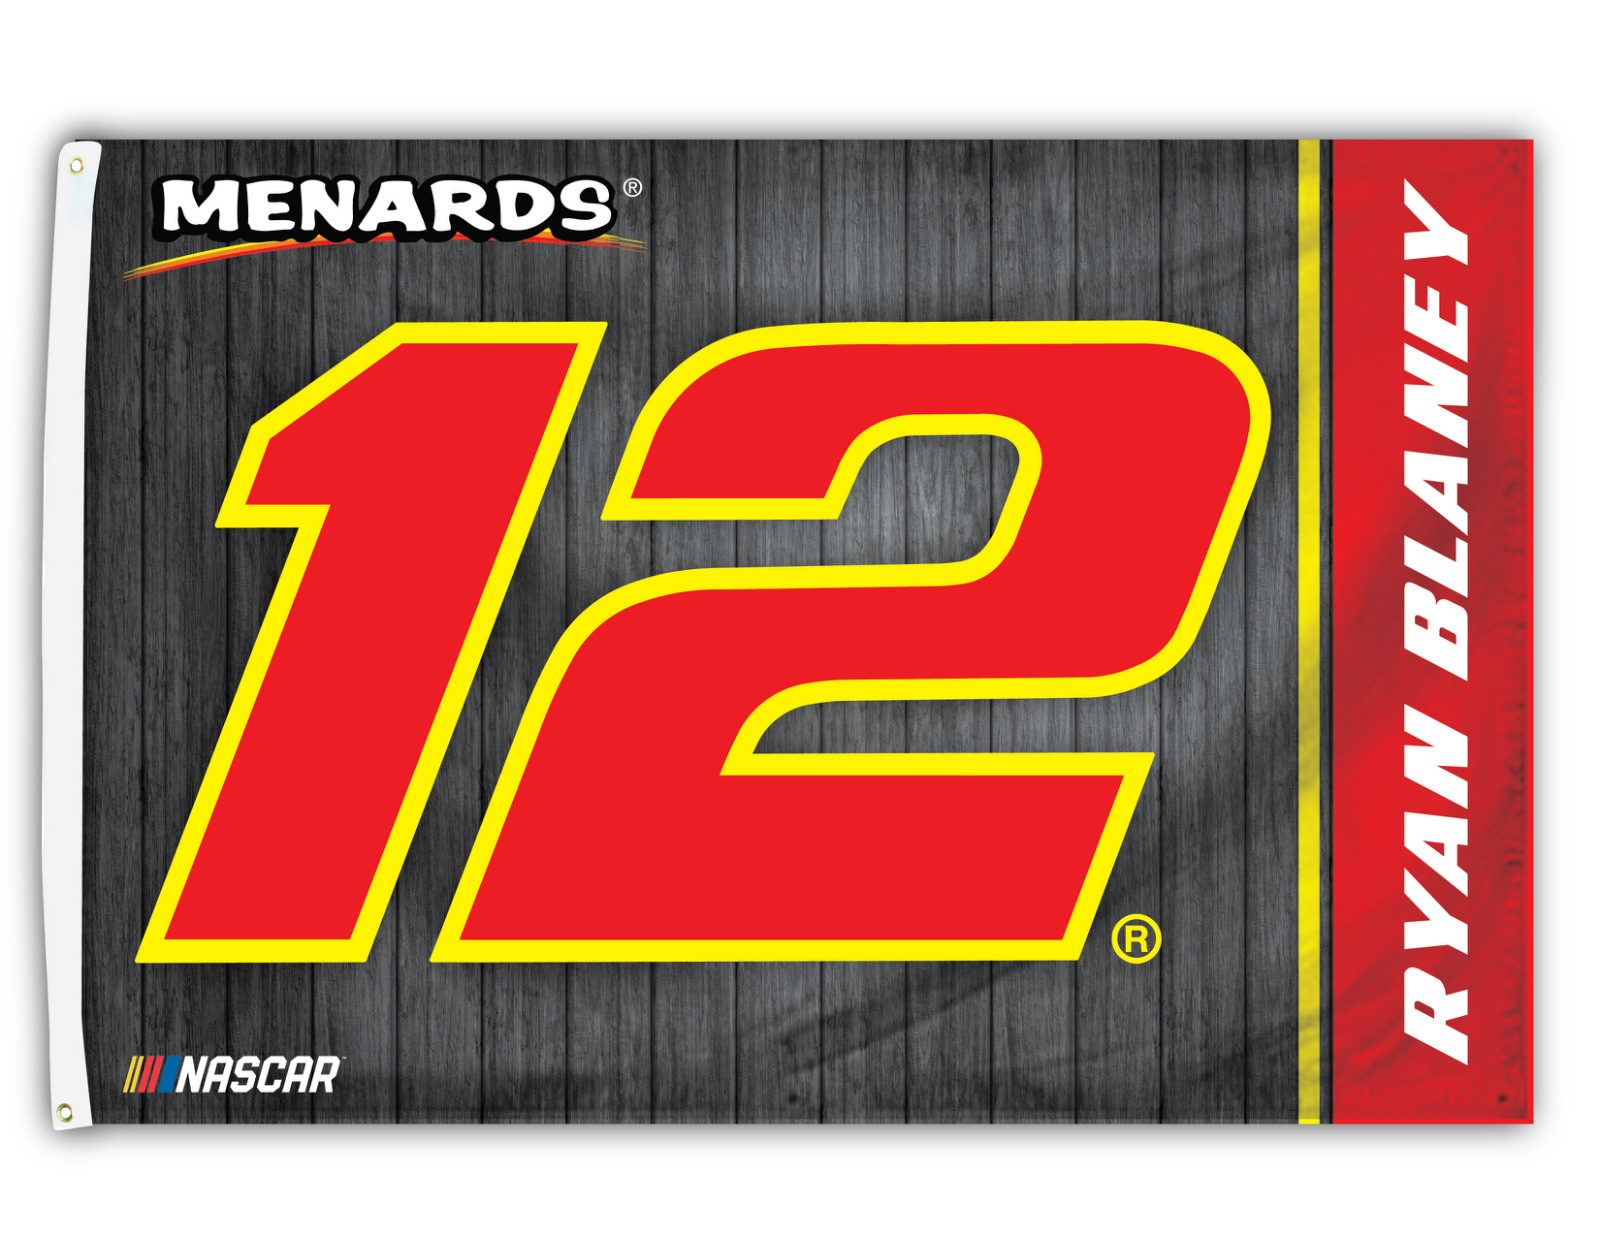 Ryan blaney 12 2018 number 3x5 flag w grommets outdoor banner nascar racing